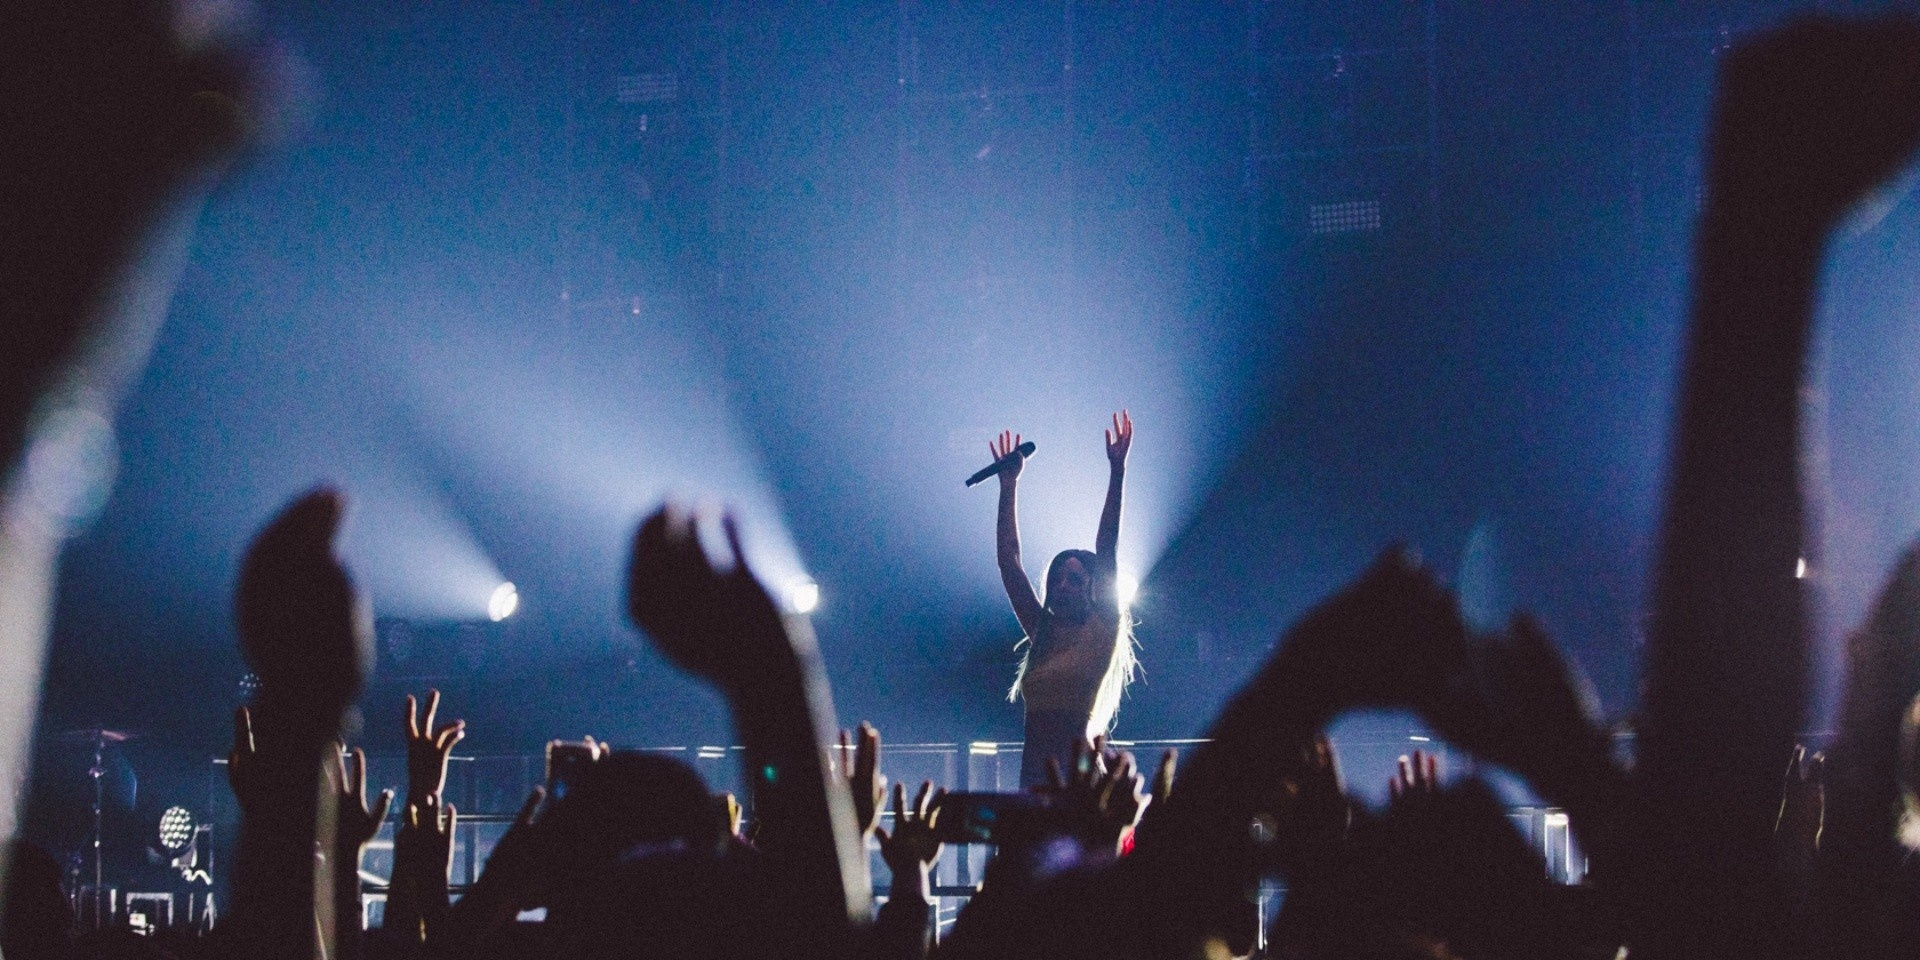 Halsey stuns at her first headlining show in Singapore - gig report